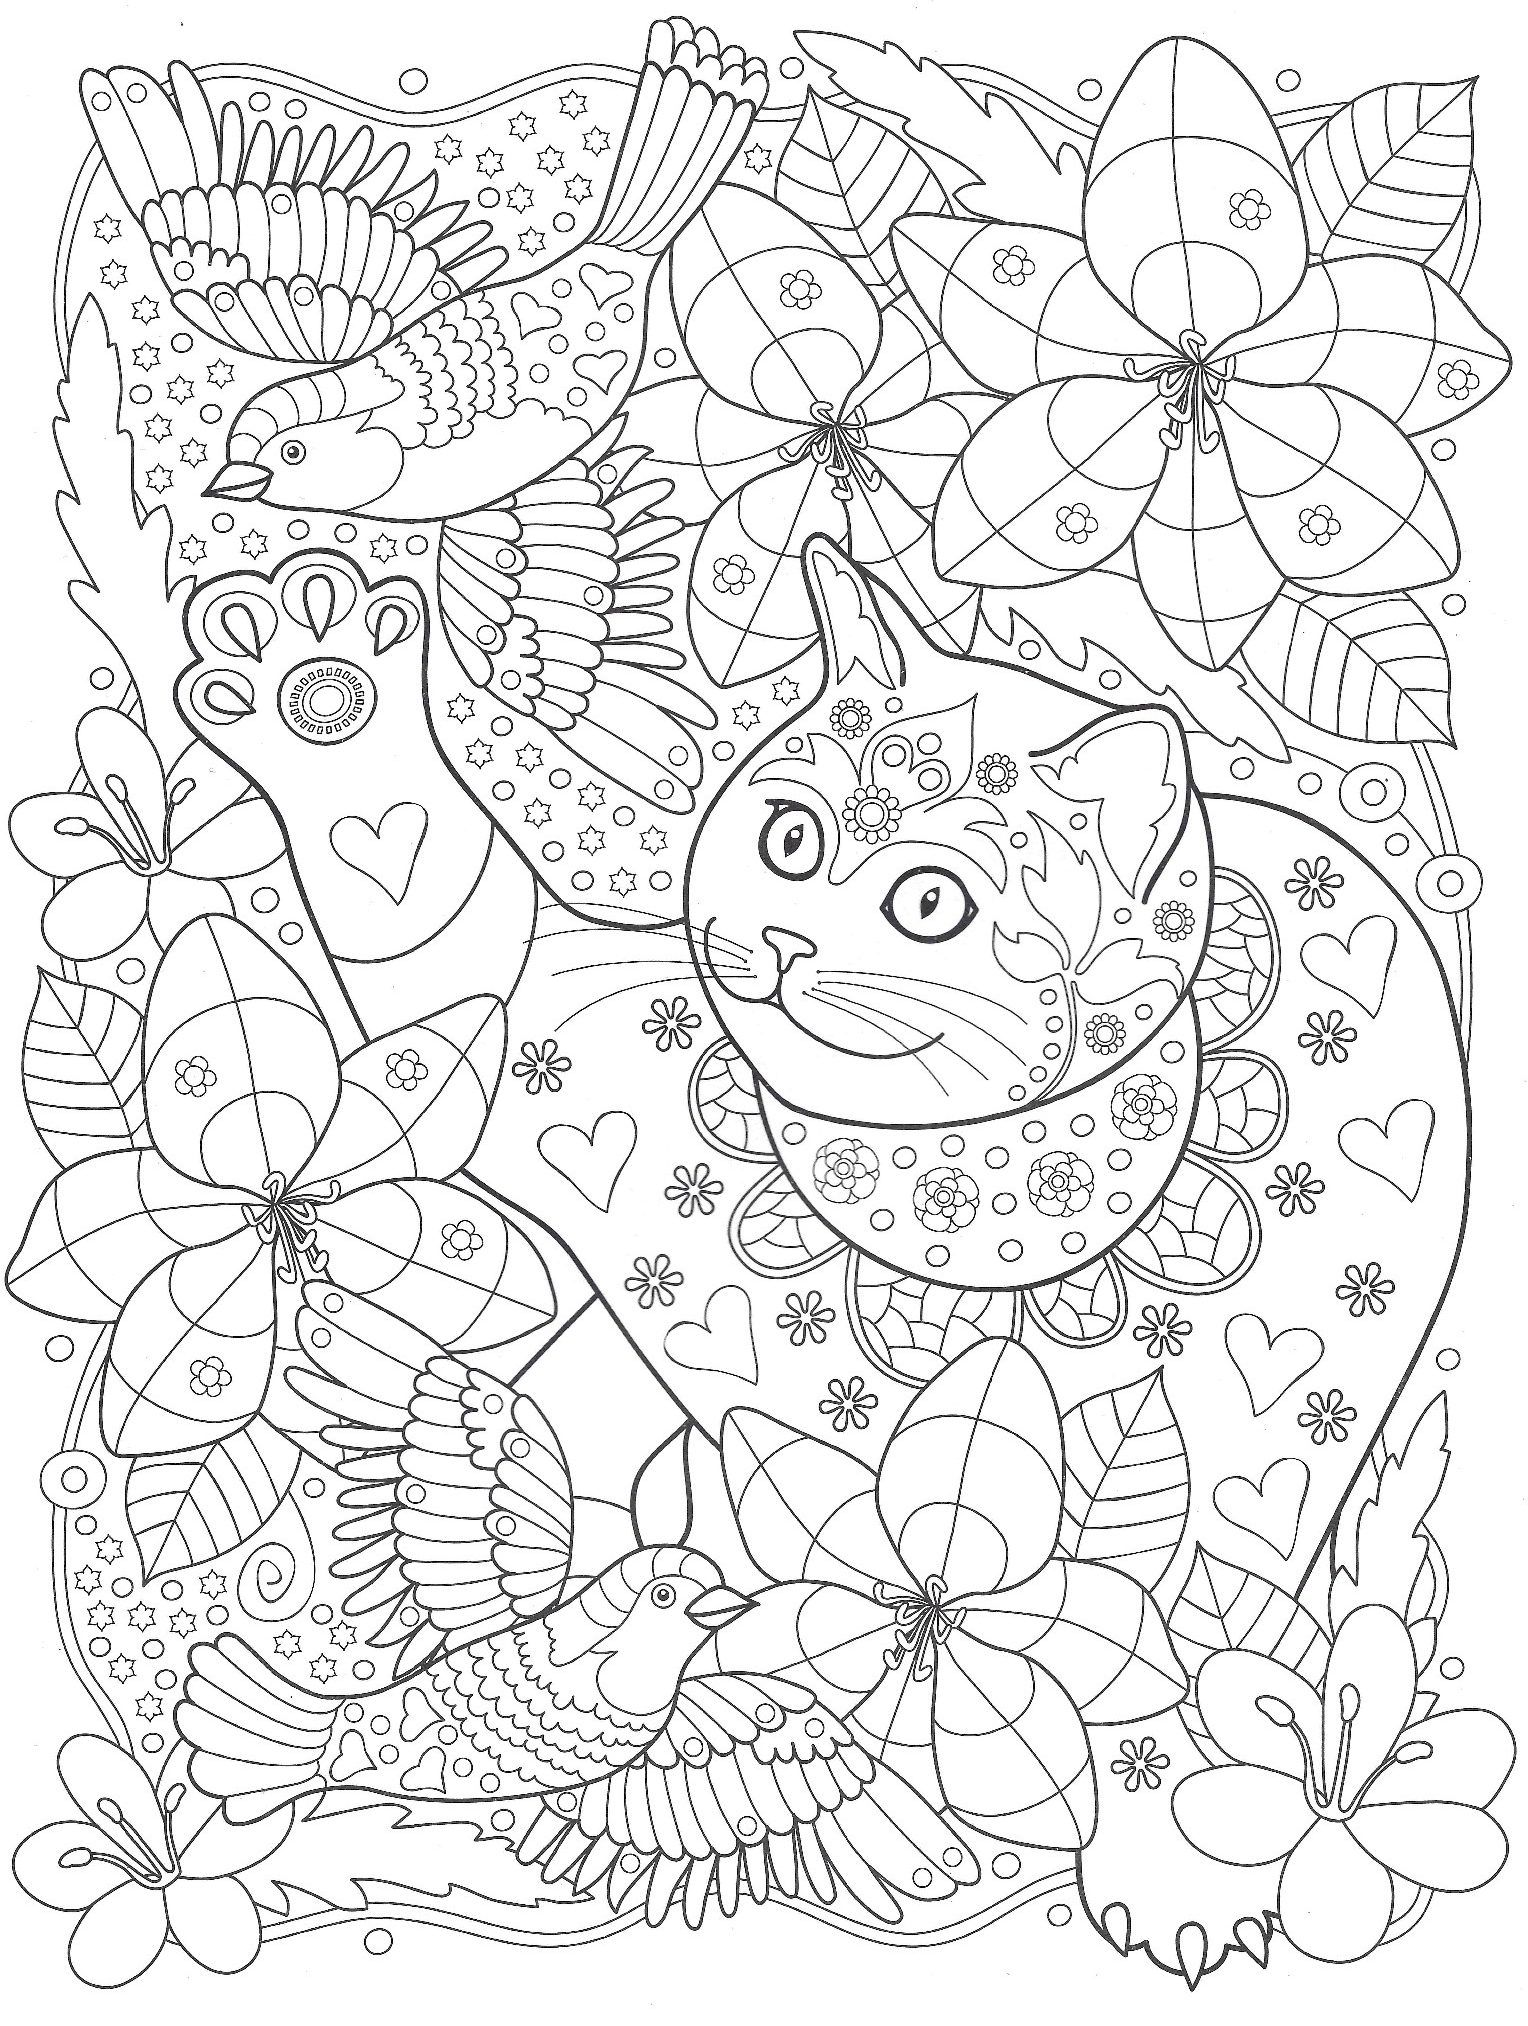 Raskraski Zhivotnye Koshka S Pticami Cat Coloring Page Cute Coloring Pages Animal Coloring Pages